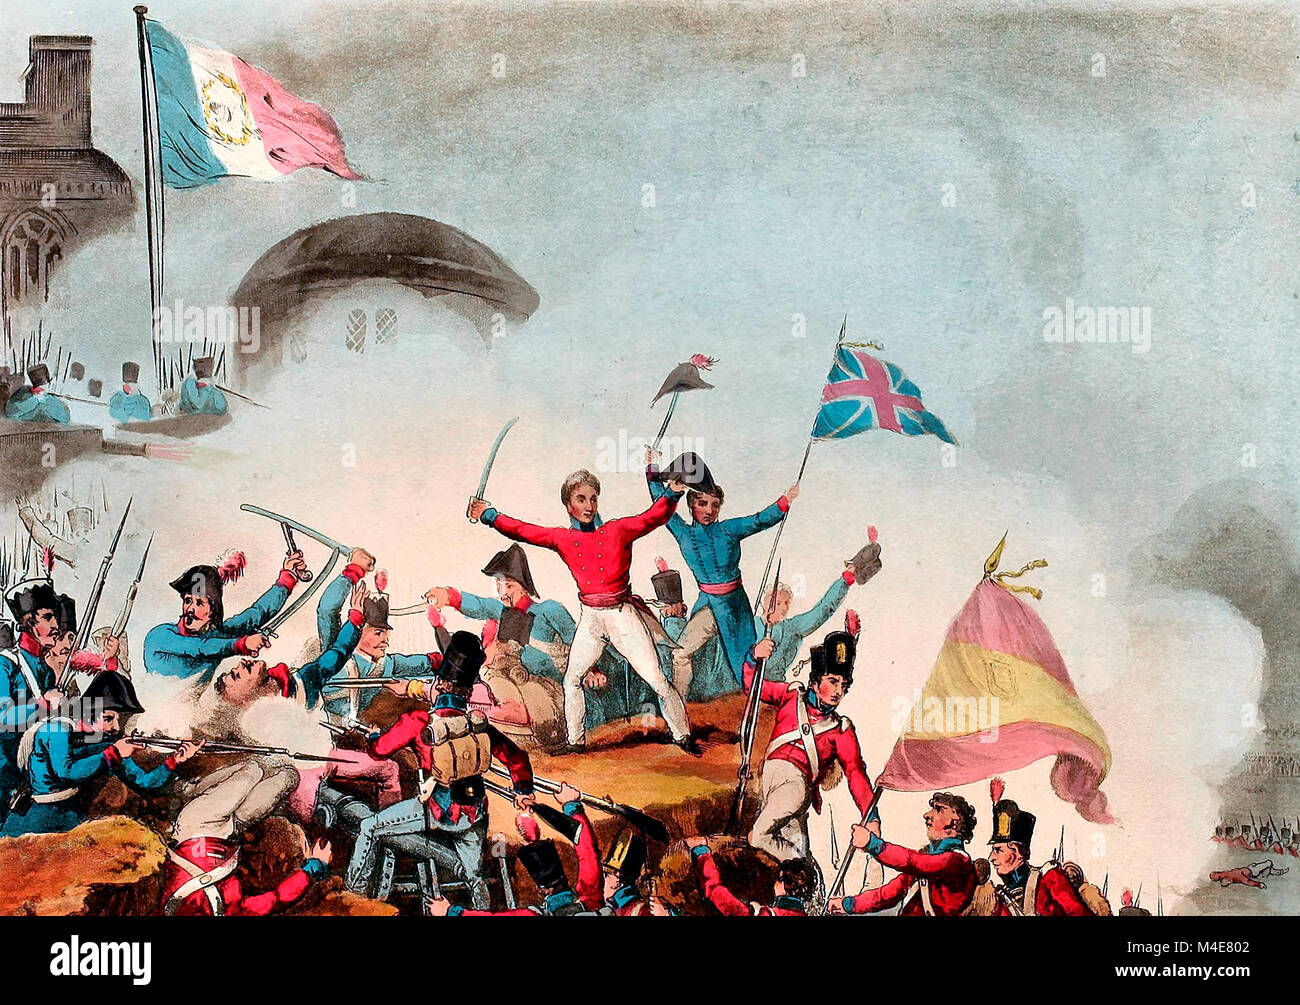 Sir Thomas Picton storming the Moorish Castle of Badajos - March 31, 1812 - Stock Image